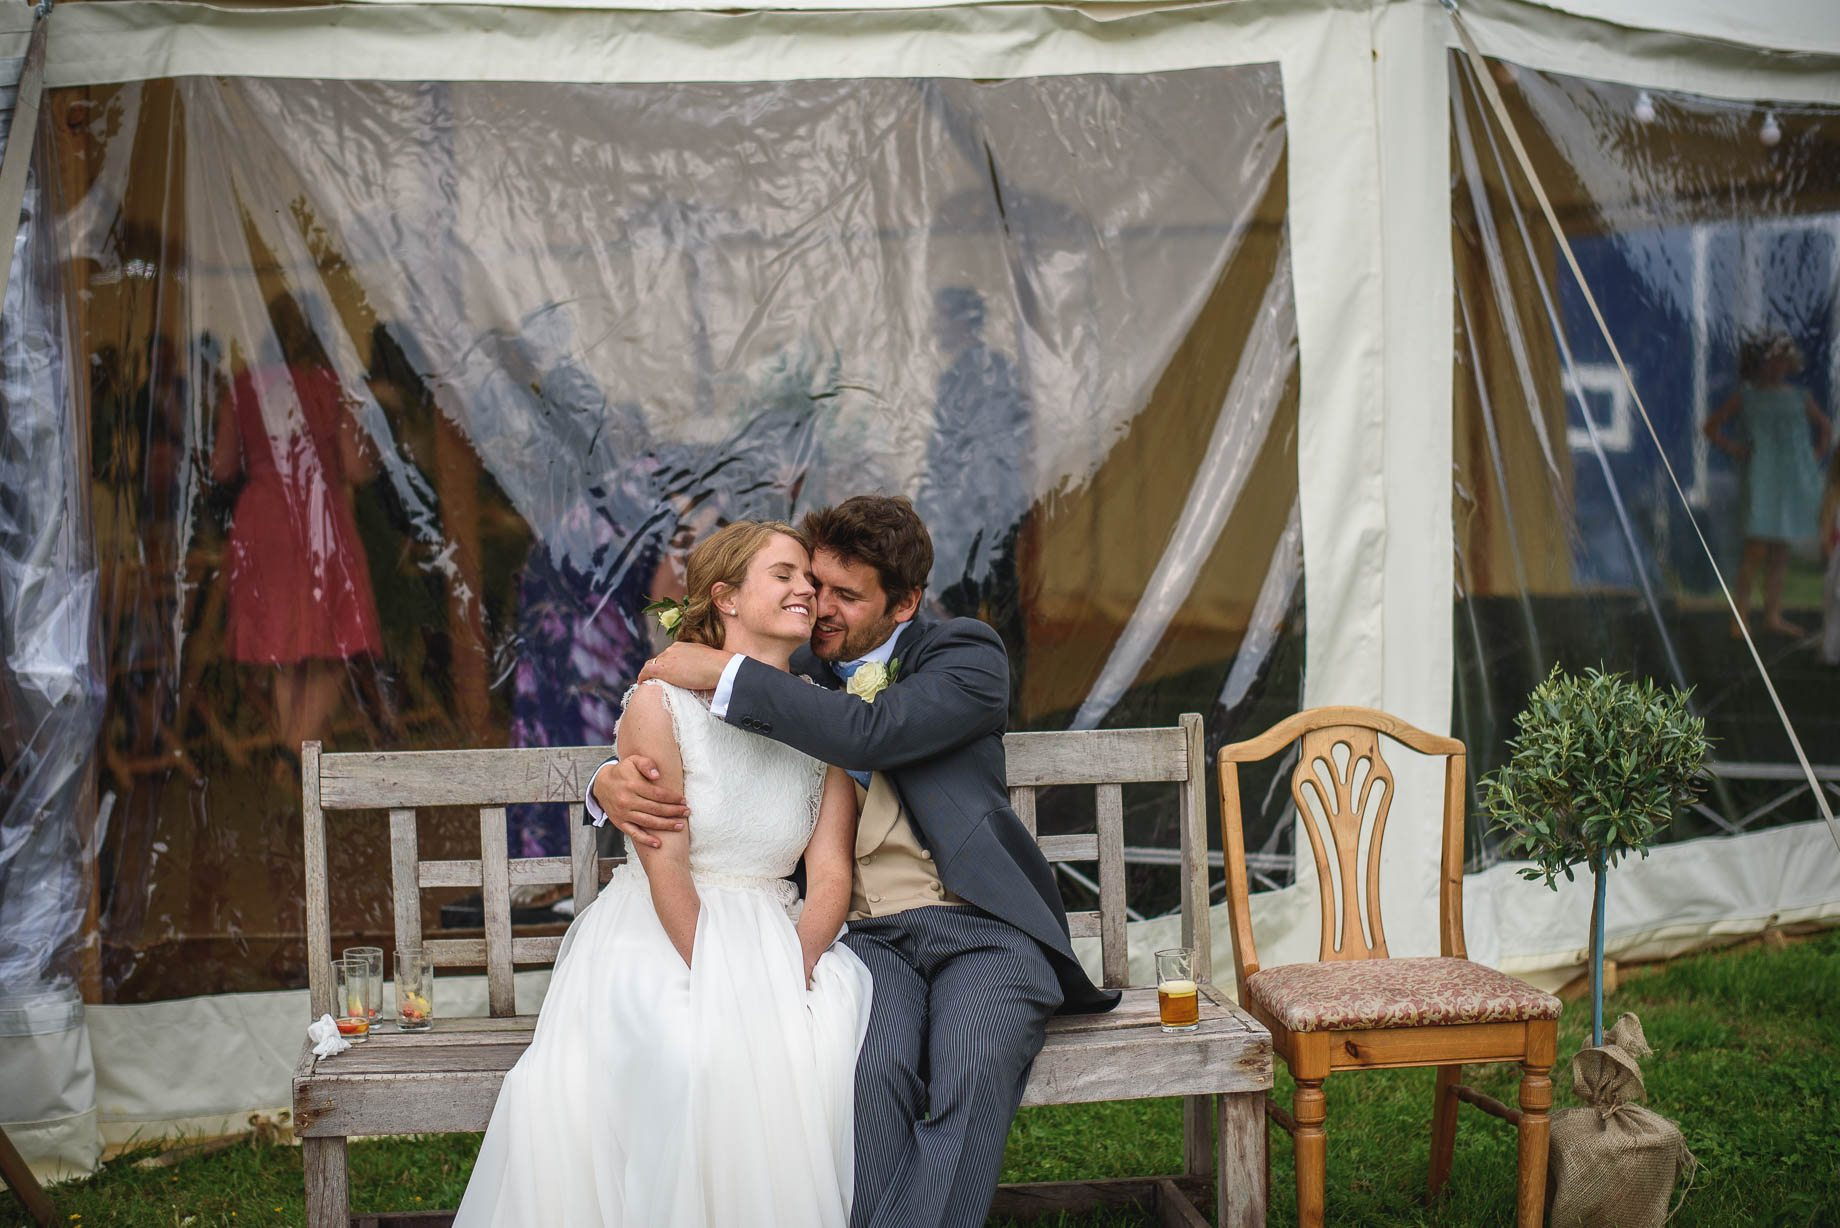 Wiltshire wedding photography by Guy Collier - Lucie and Matt (134 of 198)